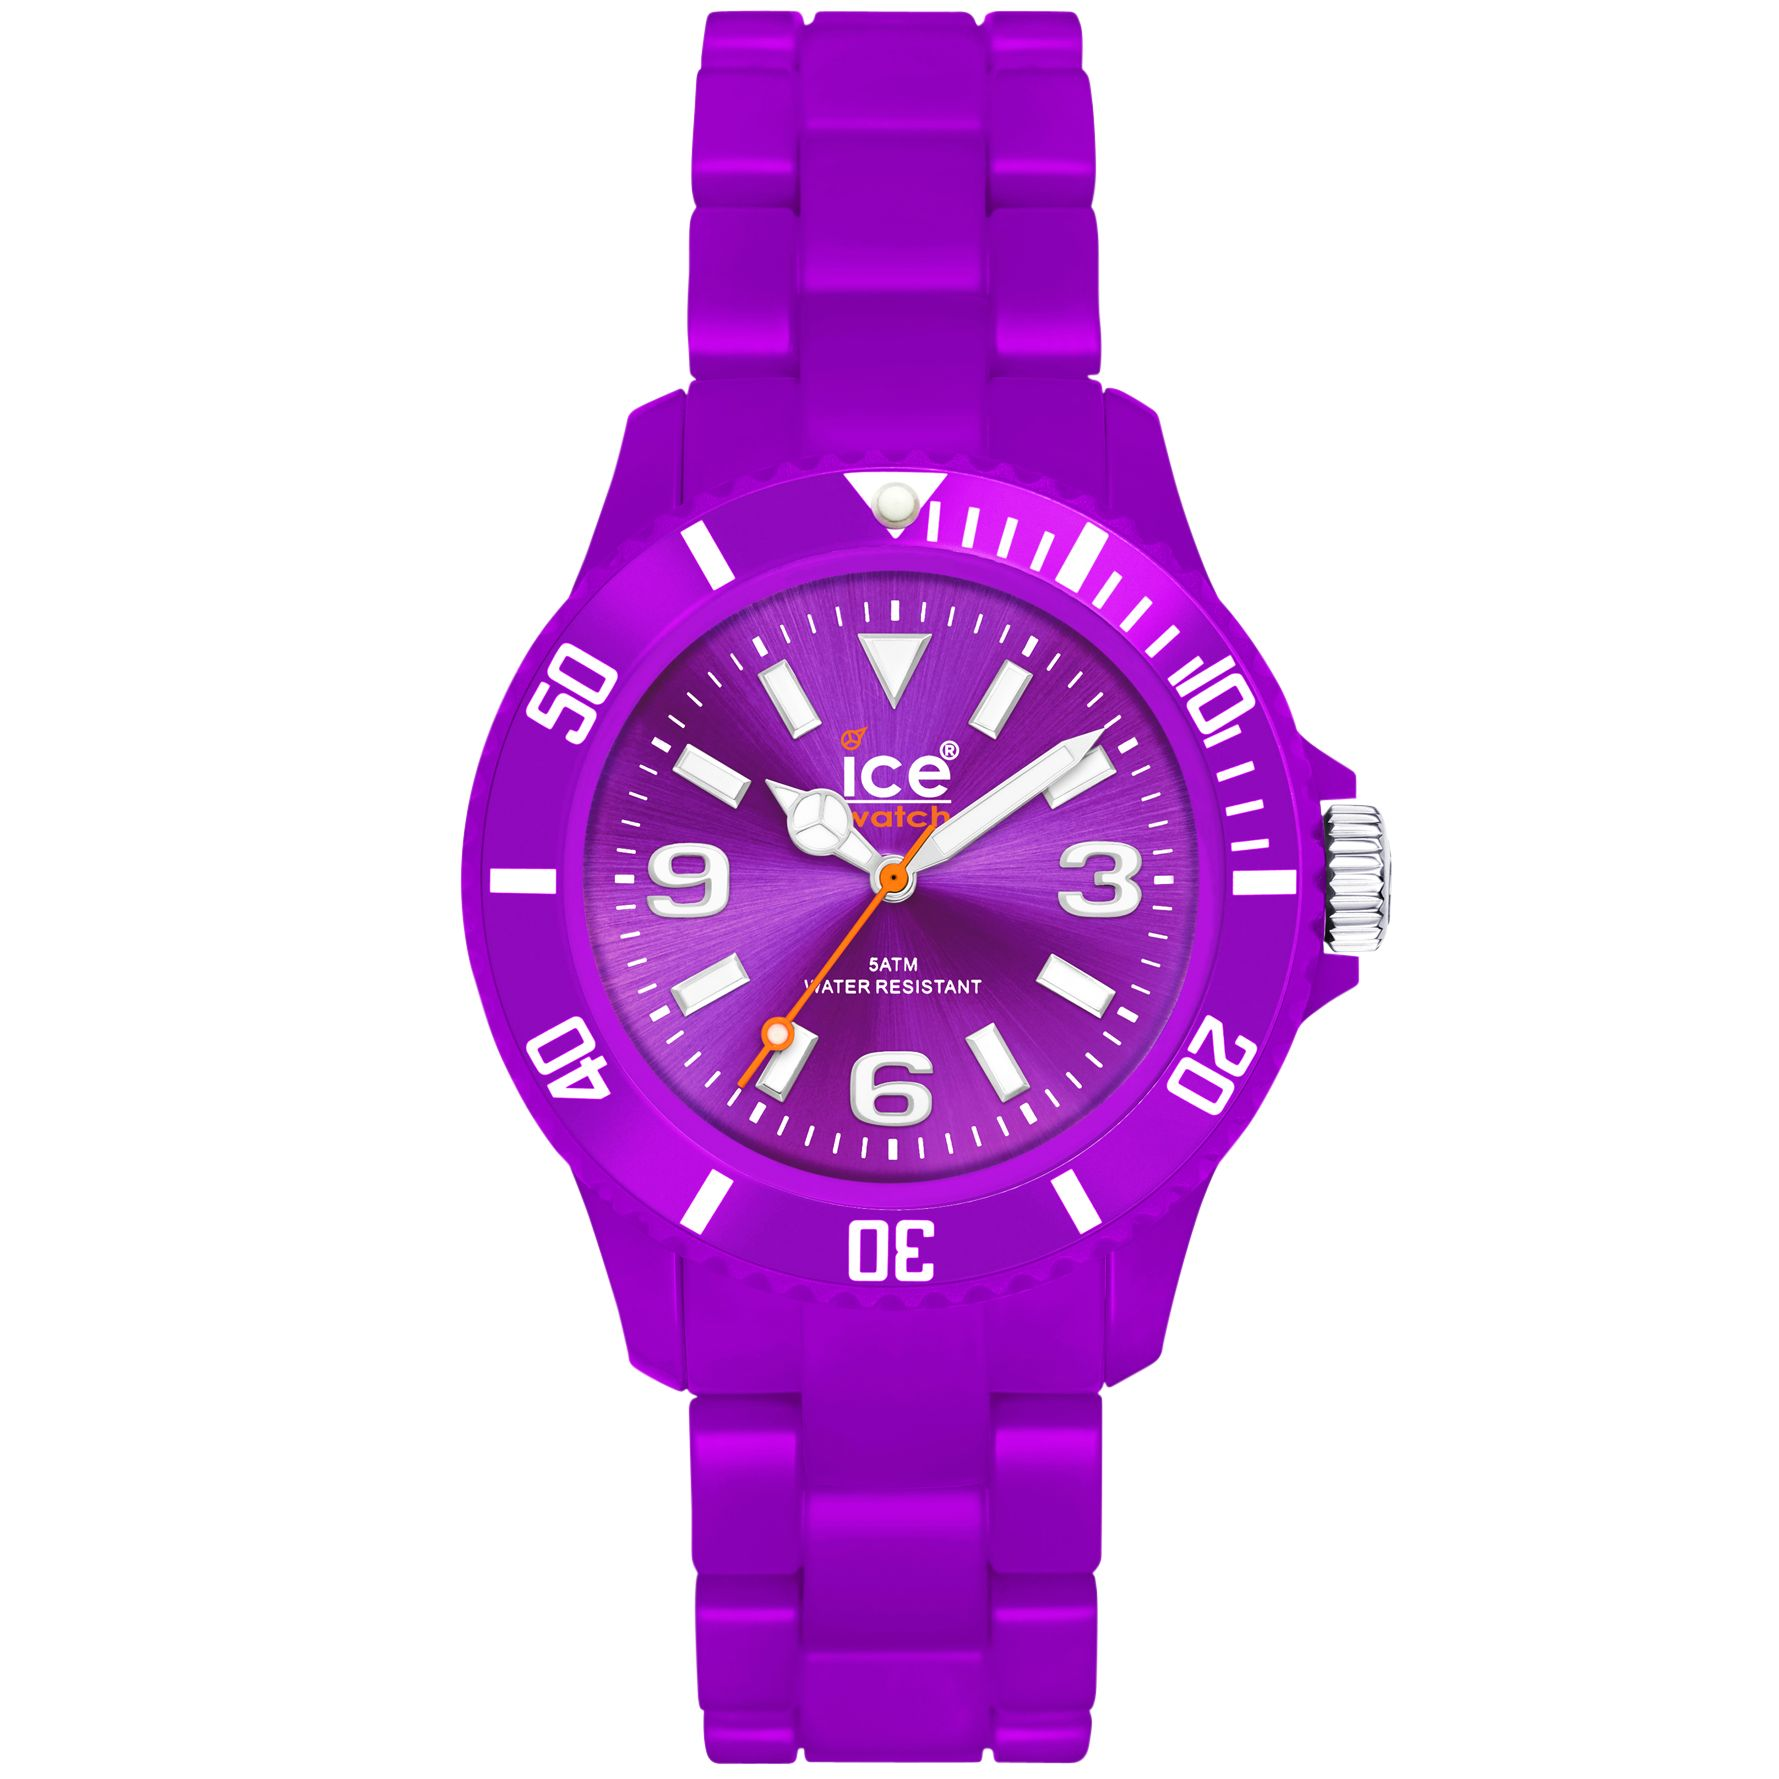 Ice CS-PE-U-P Unisex Neon Purple Bracelet Watch